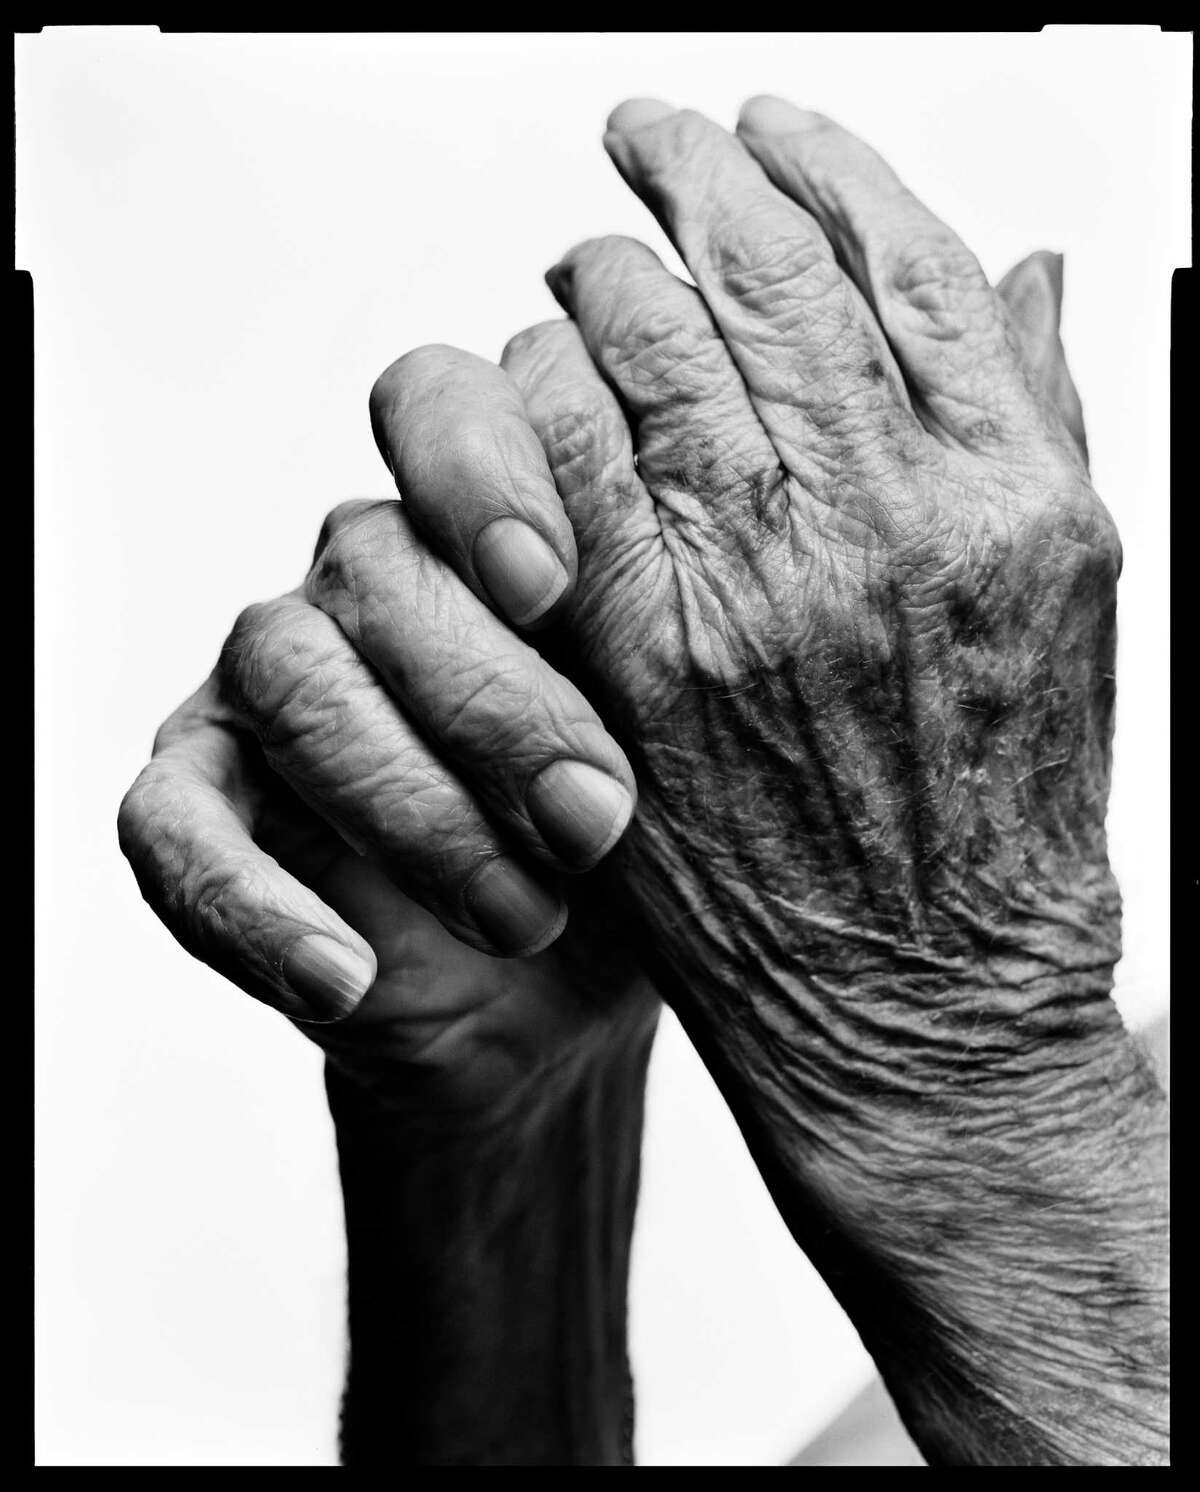 The hands of Mark Seliger's father.